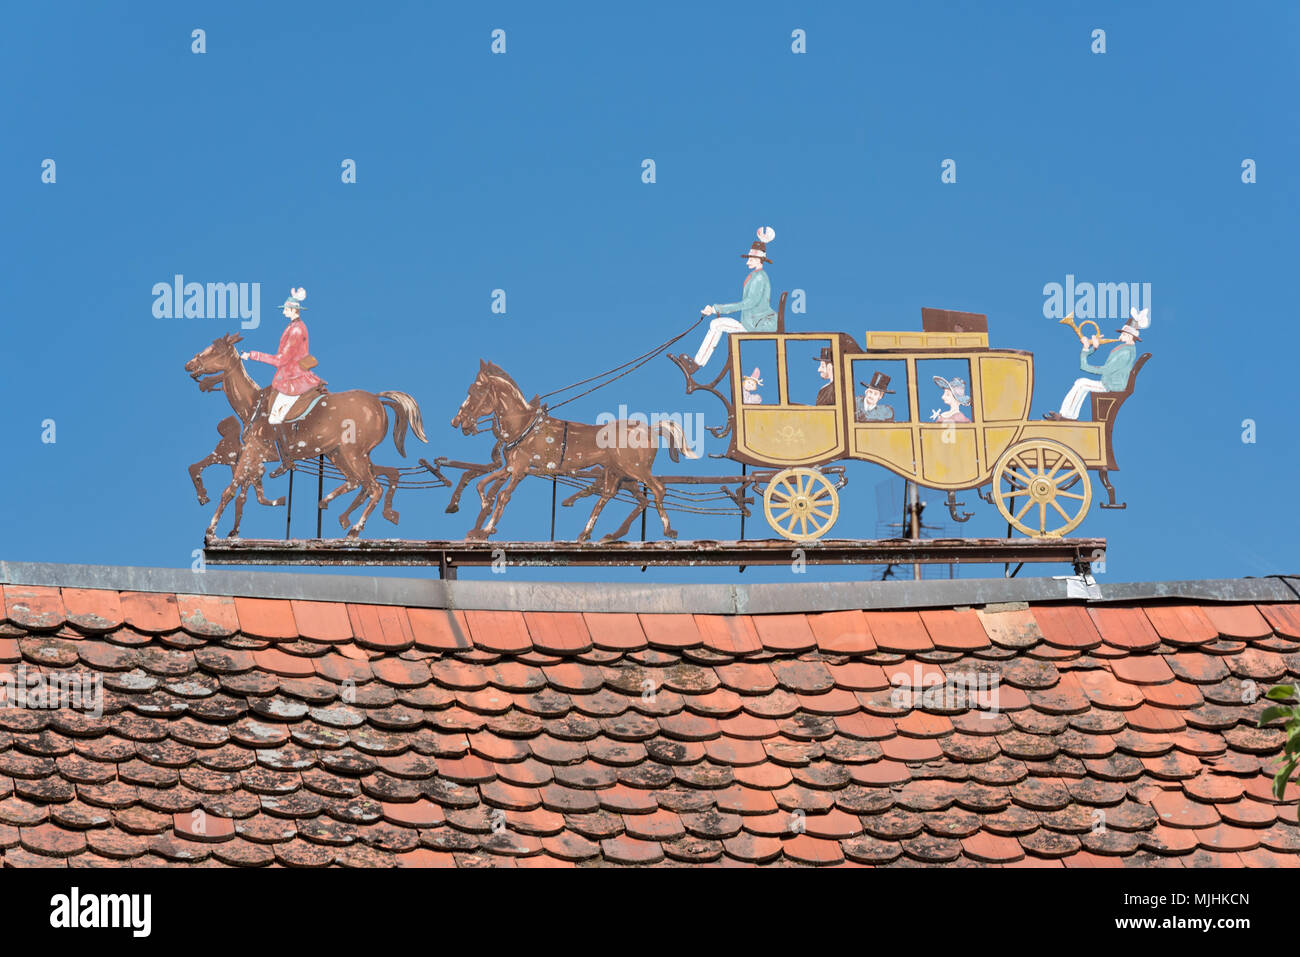 Metal figures stagecoach on the roof of a estate - Stock Image